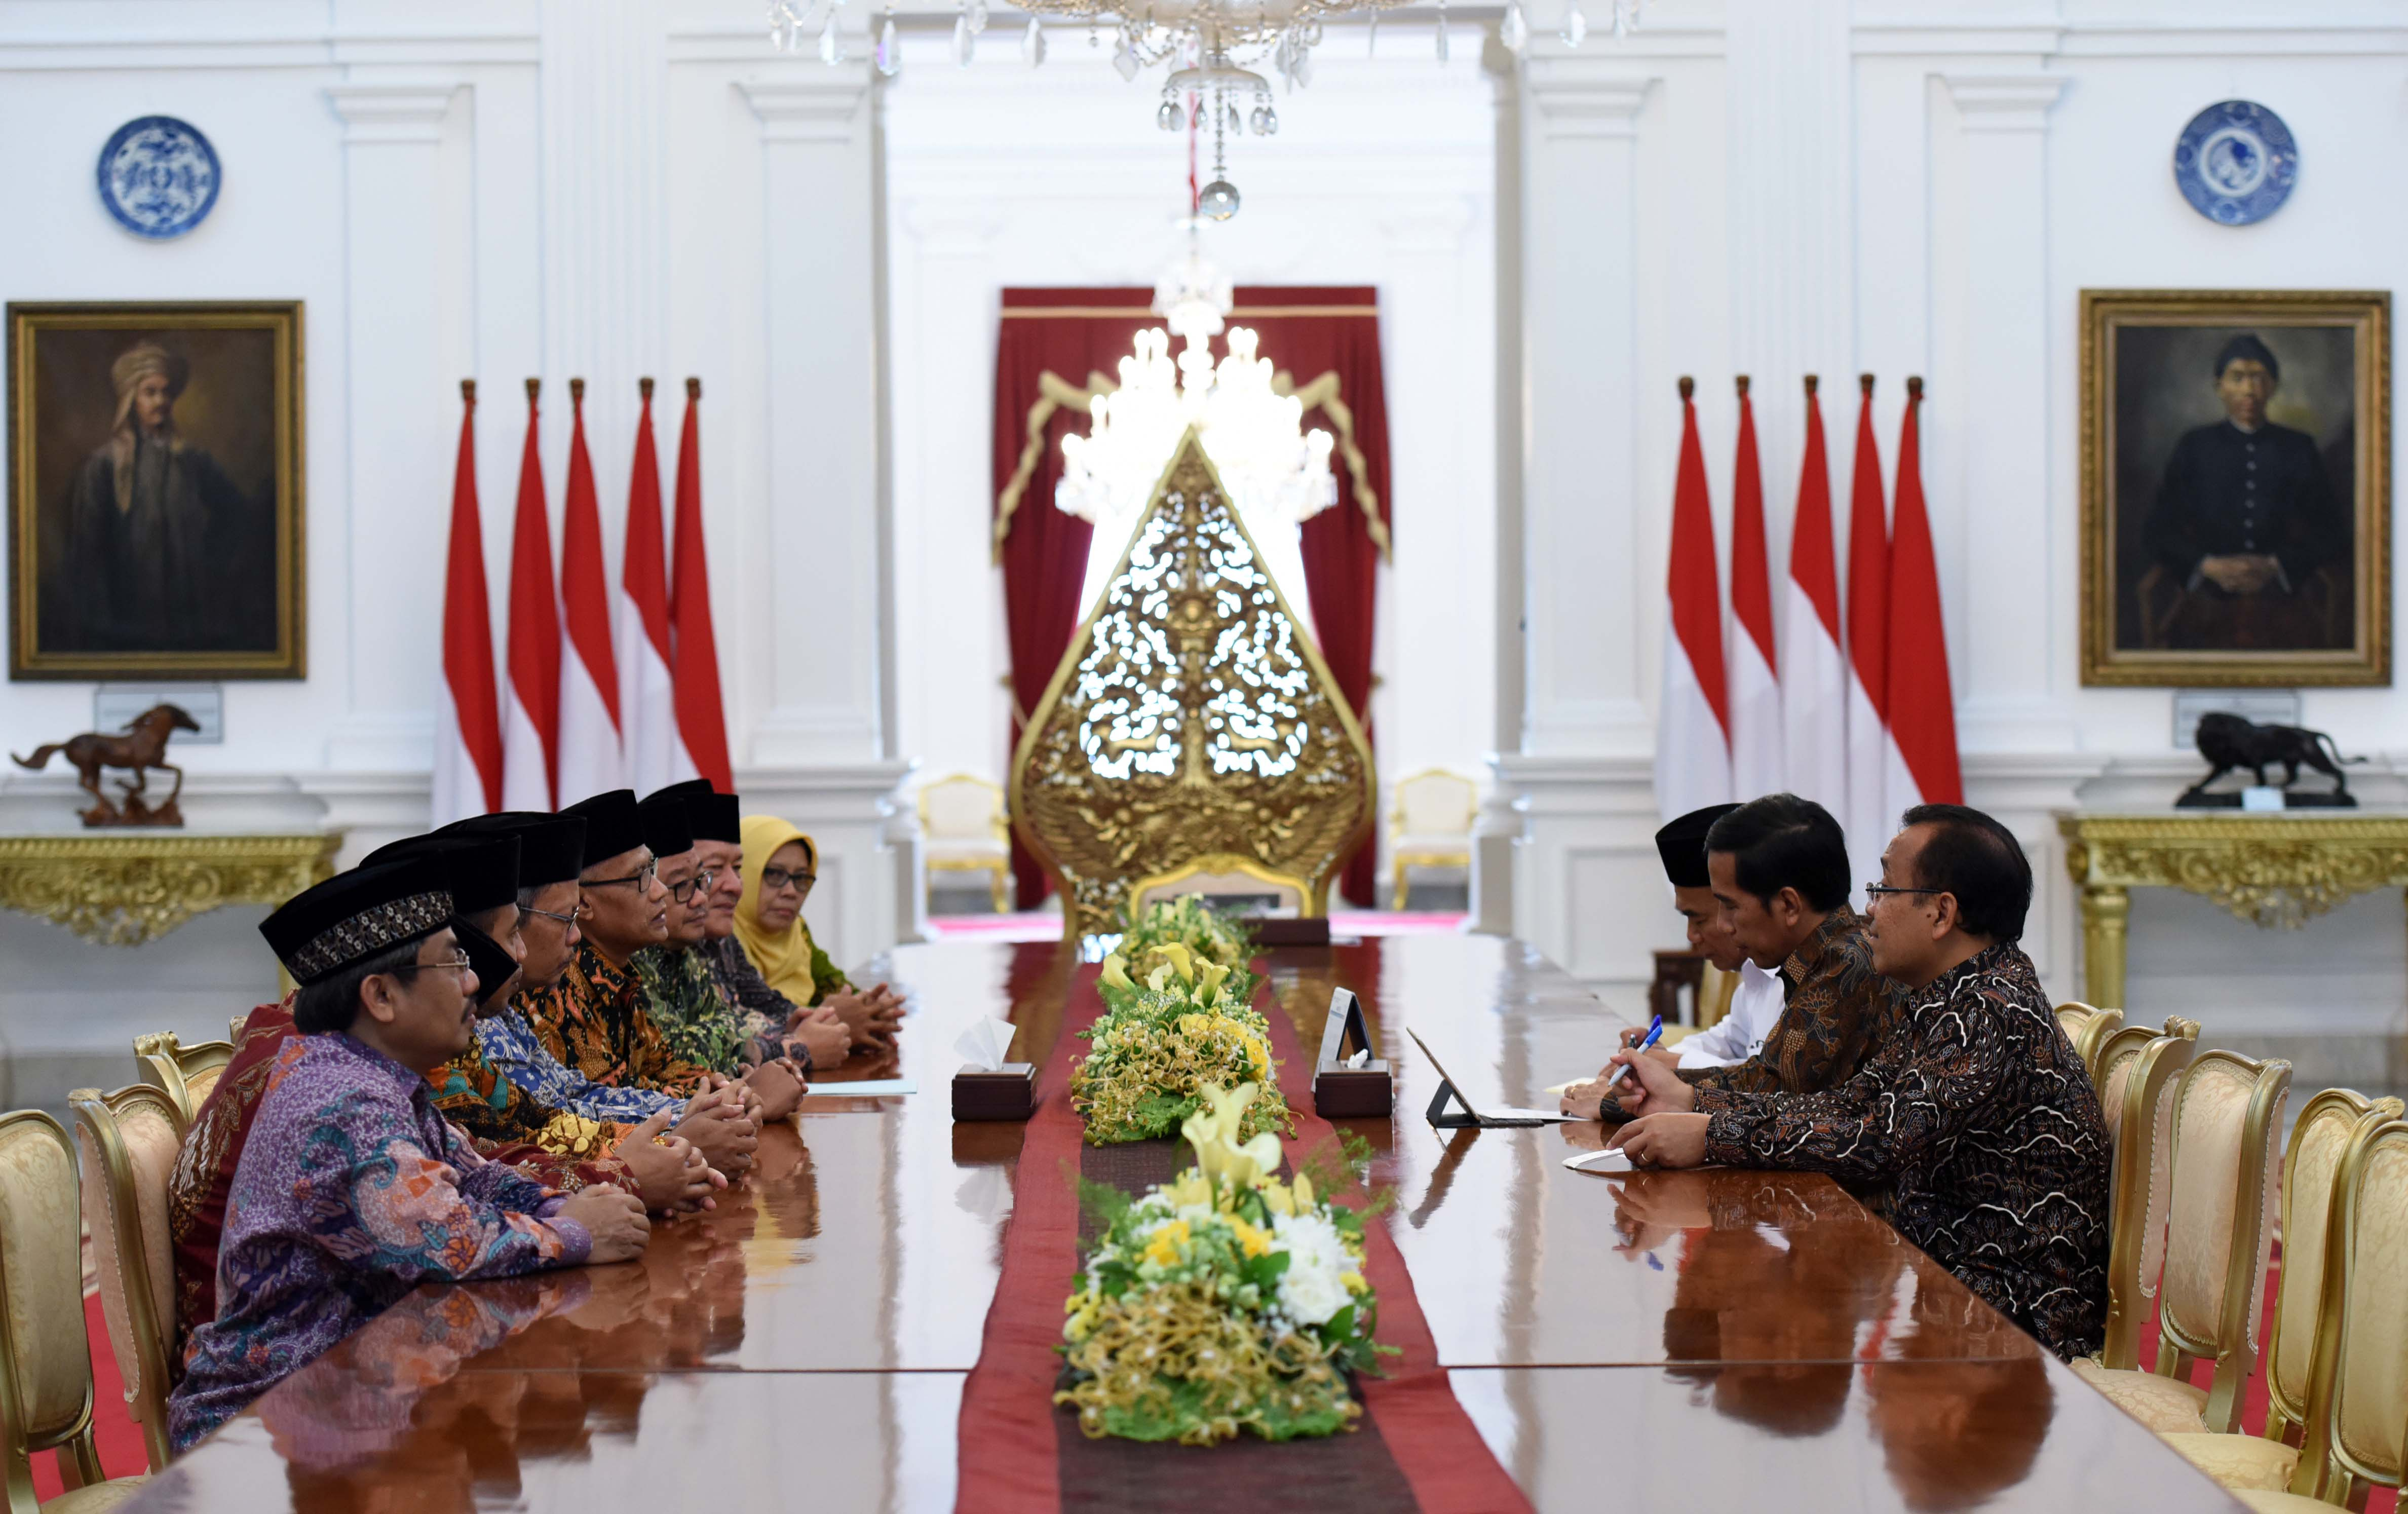 President Jokowi receives the Chairman of Muhammadiyah at the Merdeka Palace, Jakarta, on Monday (13/2) afternoon